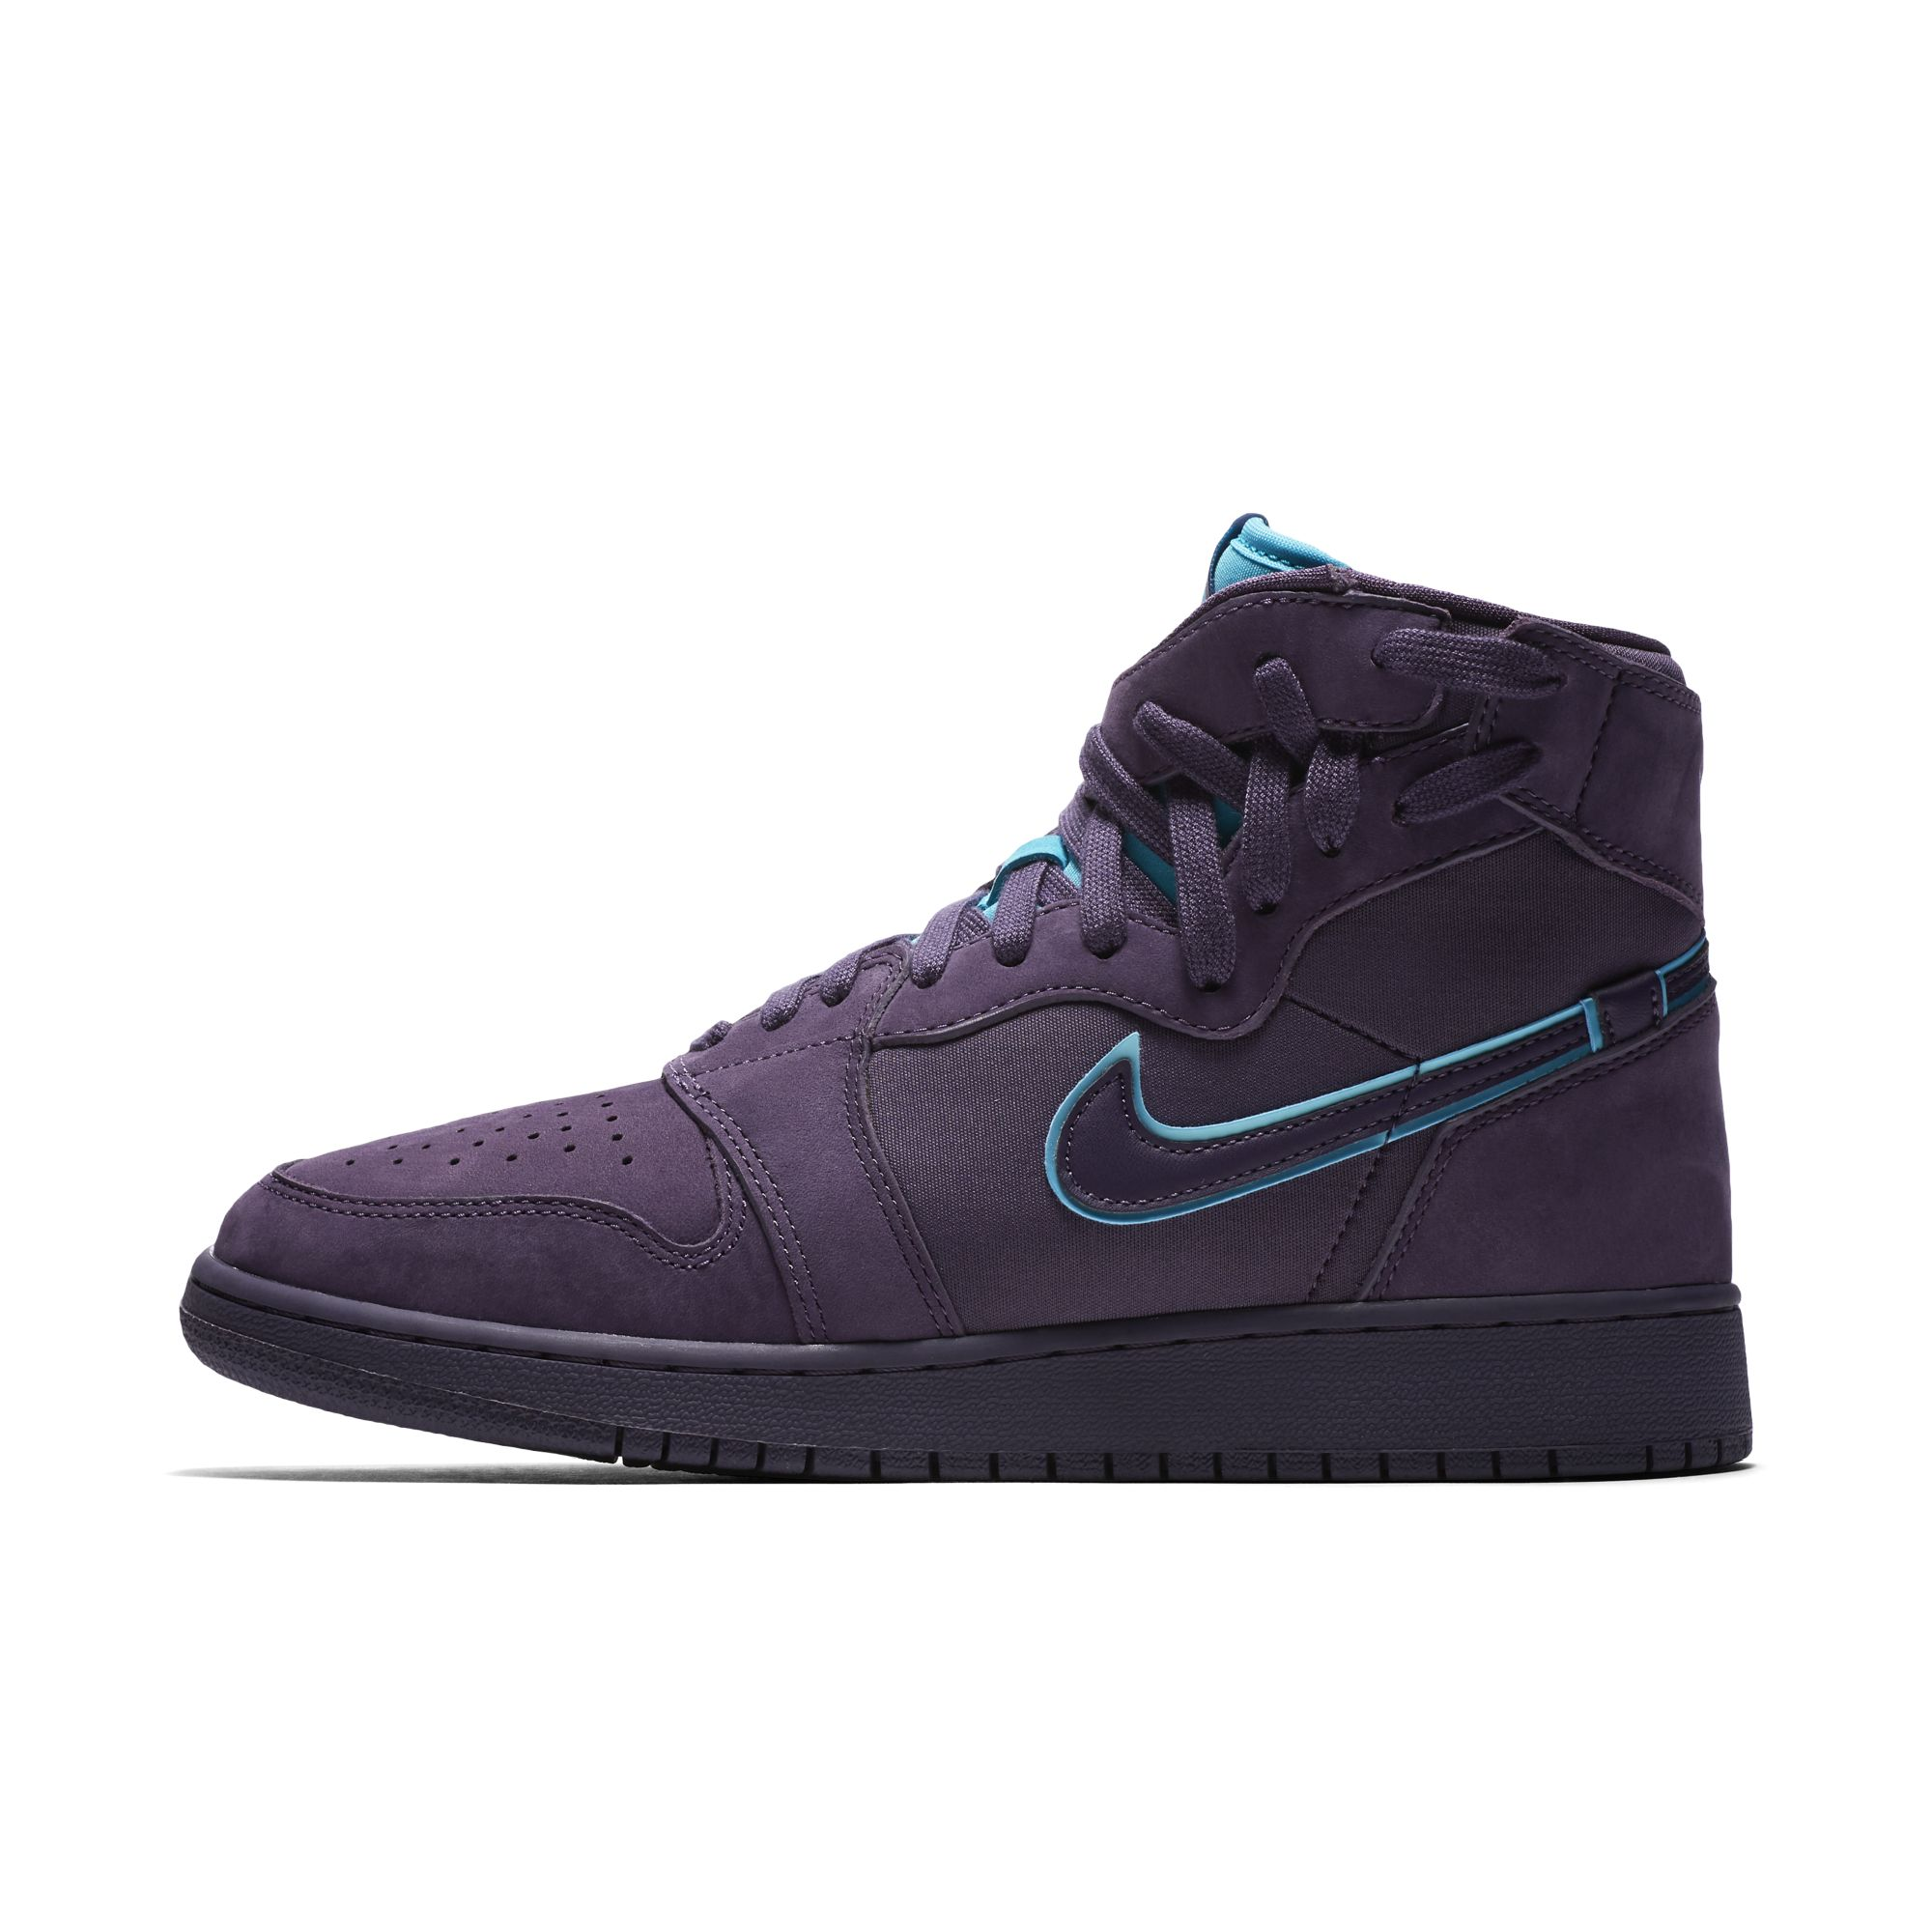 AIR JORDAN 1 REBEL XX DARK RAISIN:RAPID TEAL:WHITE:DARK RAISIN 3